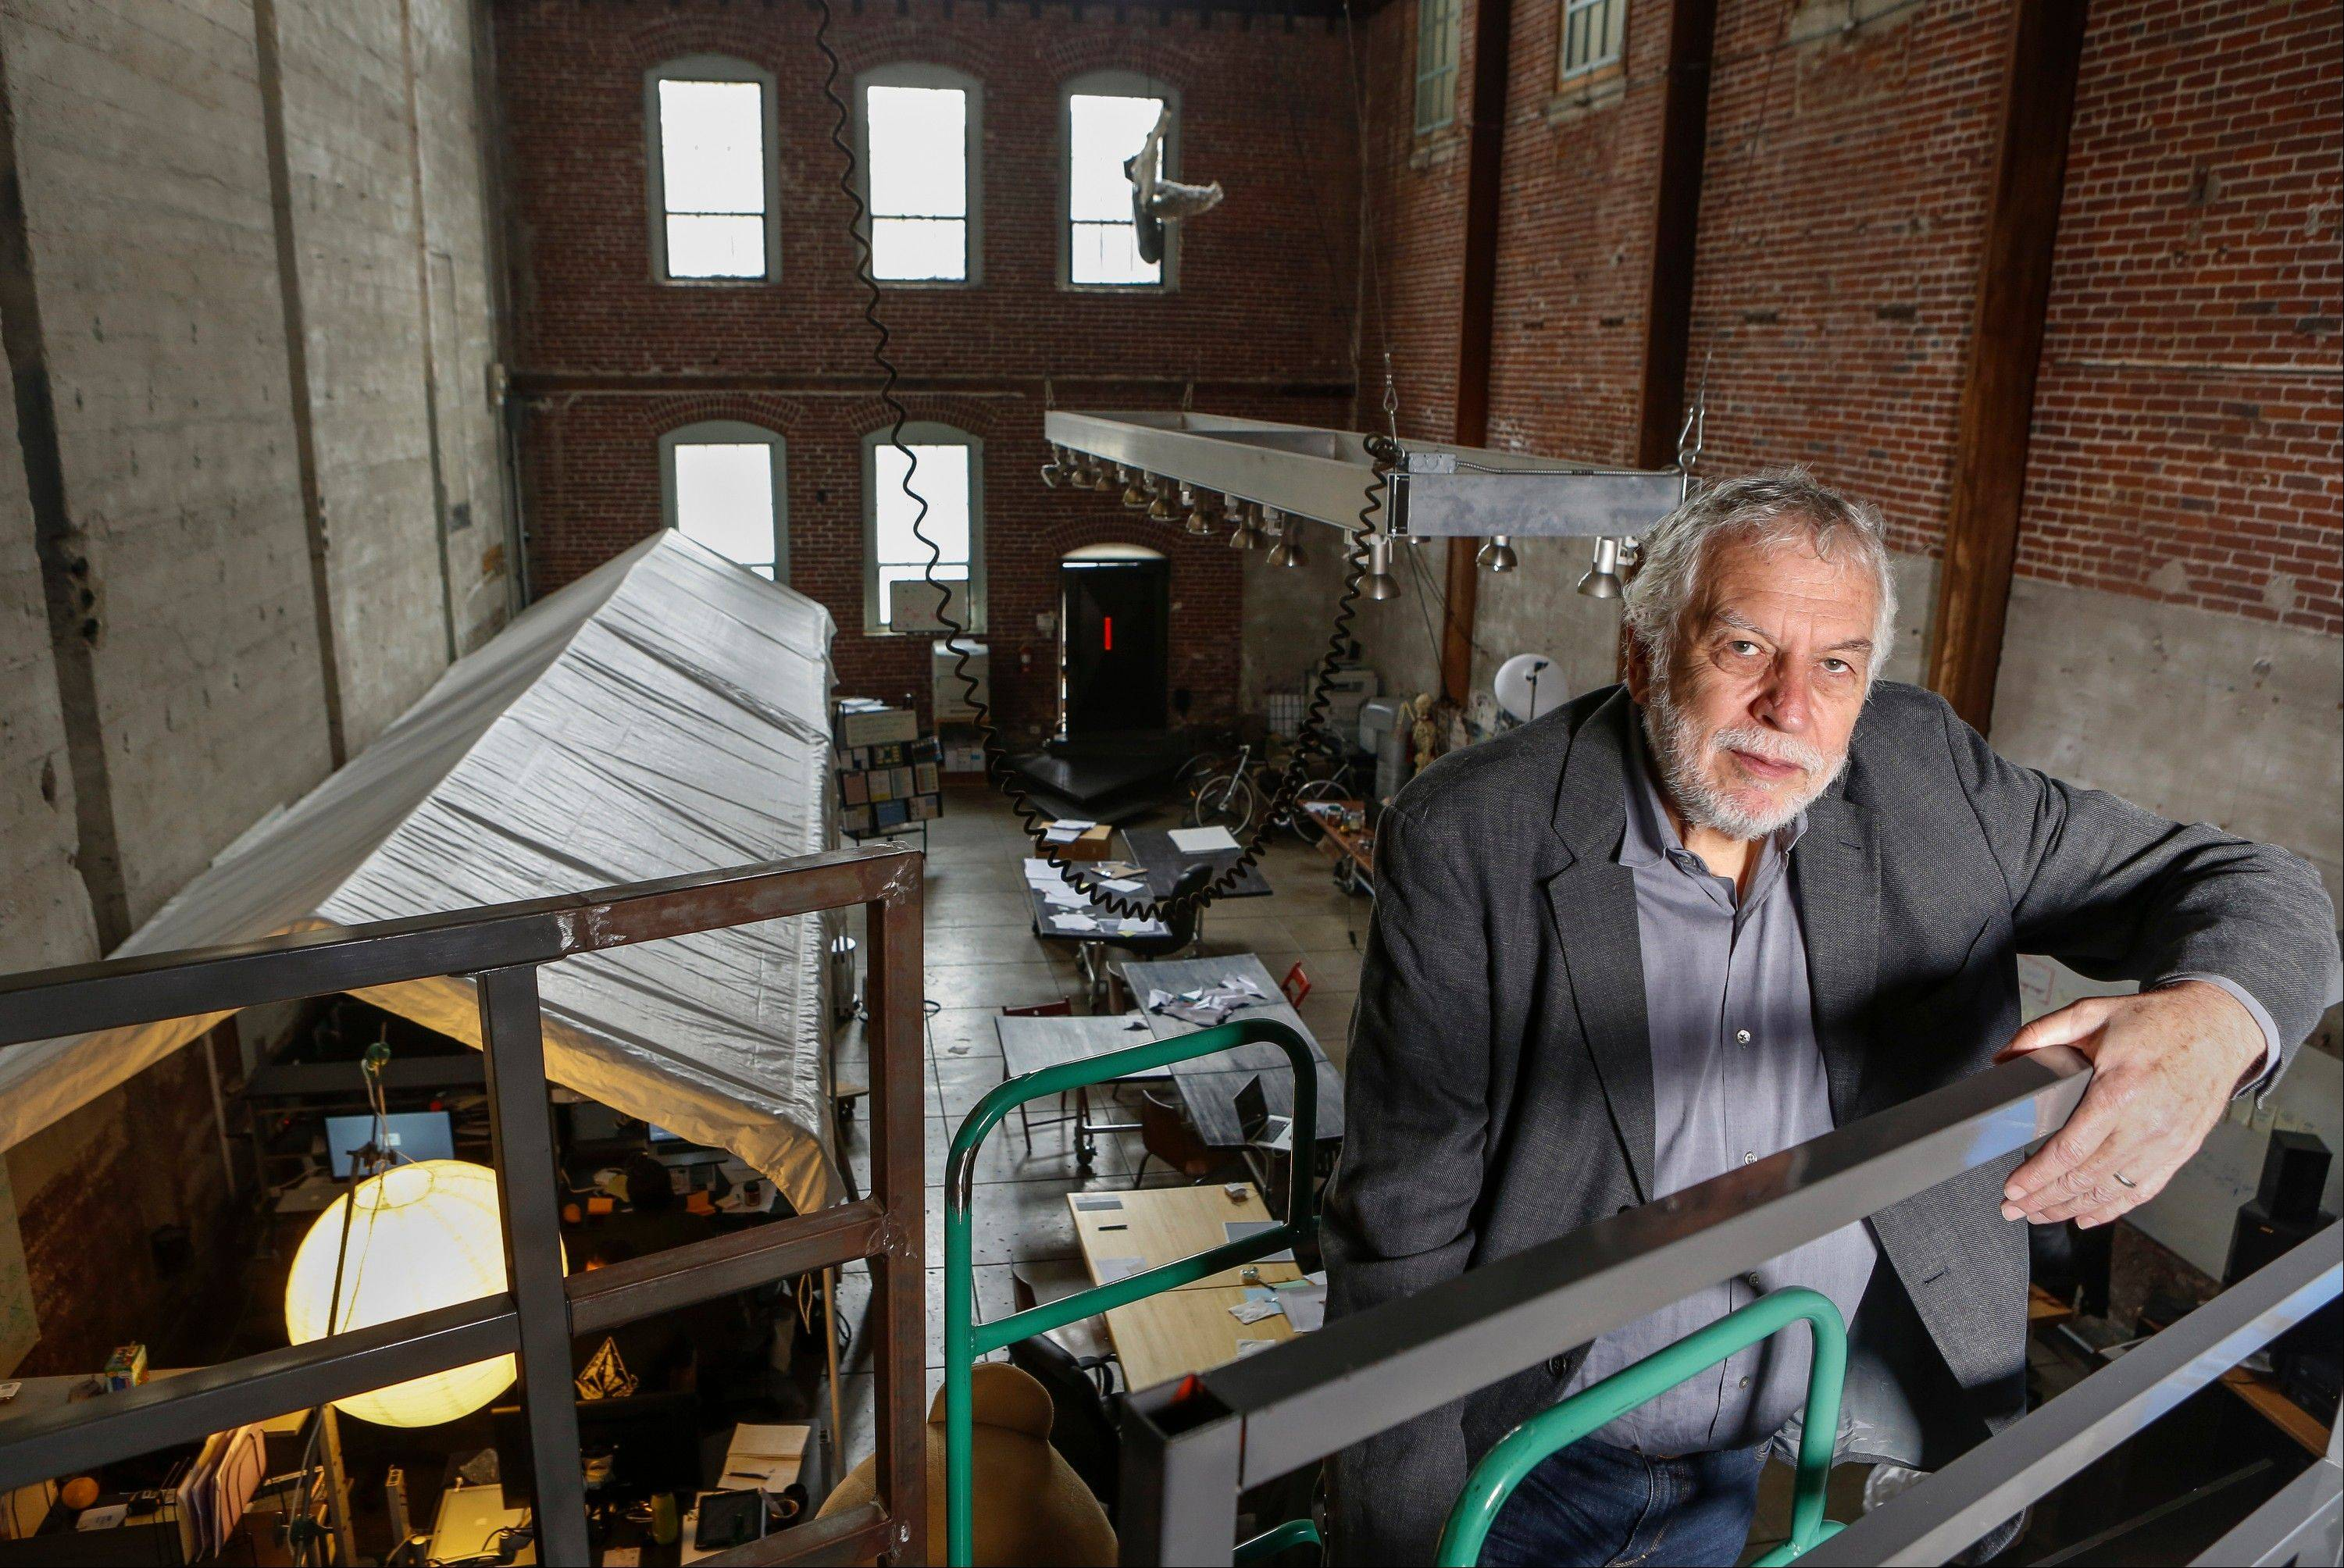 In this photo taken Wednesday, Mar. 20, 2013, Nolan Bushnell, the founder of Atari poses for a photo at �Two-Bits-Circus,� a Los Angeles idea factory focused on software, hardware and machines. Bushnell was the first guy to give Steve Jobs his first full-time job in Silicon Valley at Atari.